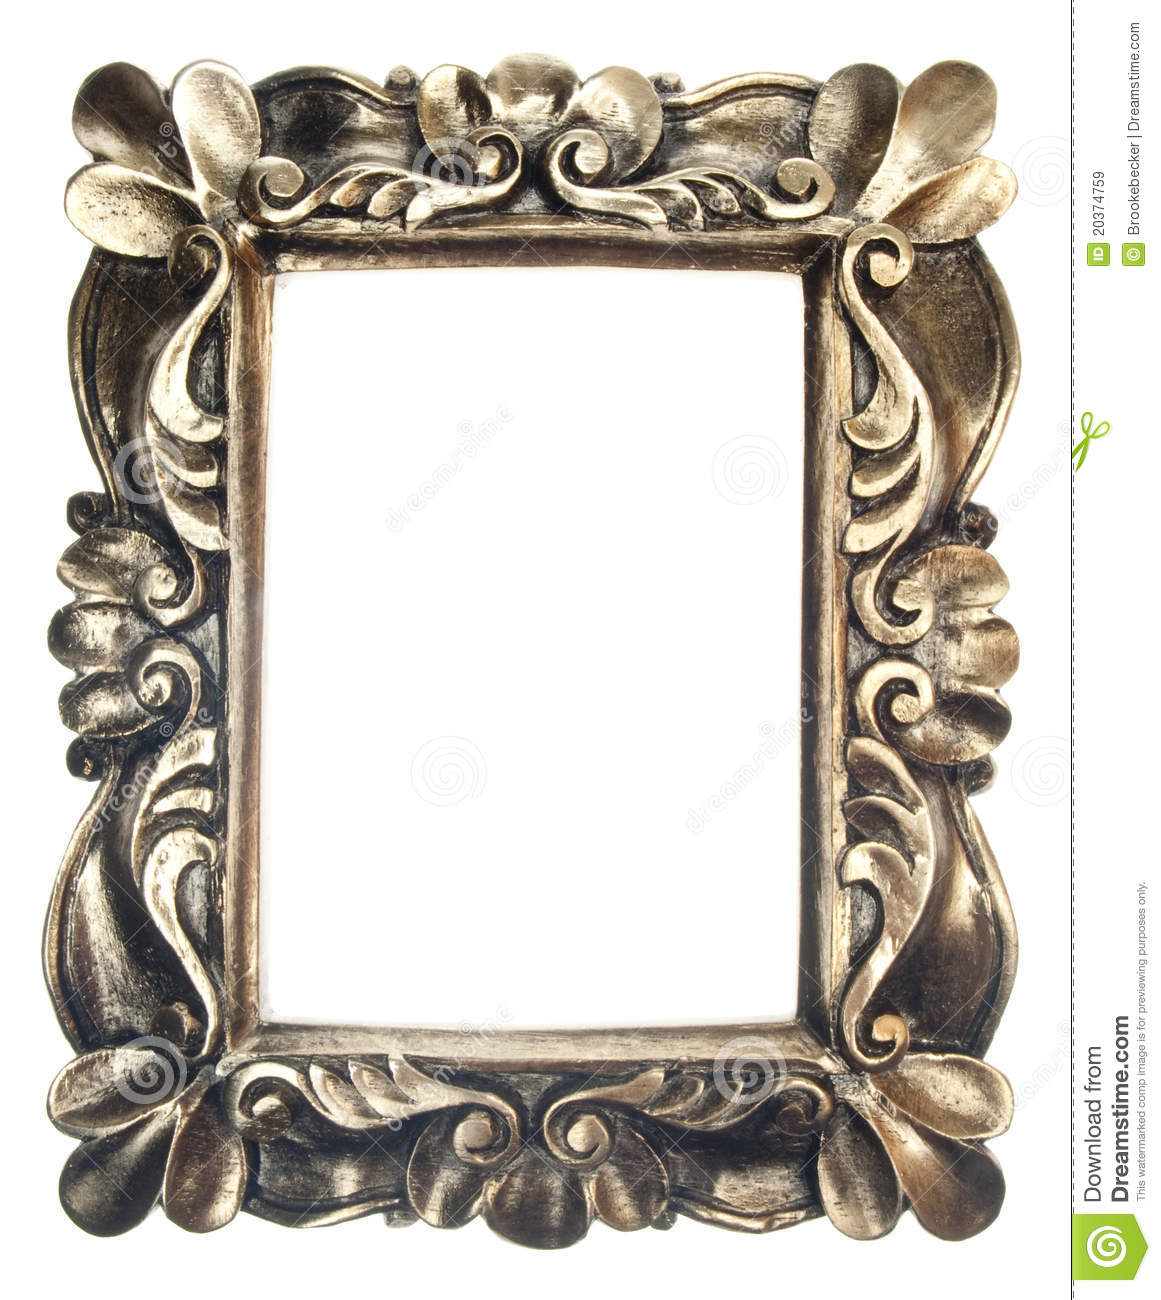 Amenajare La Cheie Casa In 2 Saptamani Buget De Criza also Ajmal Sowar Banat Mohajabat 2014 Ilbanat as well Royalty Free Stock Images Golden Ornate Frame Image20374759 moreover Stylish Home Ralph Lauren Home One Fifth Collection further Donnez Un Second Souffle A Votre Cheminee. on art deco interior design